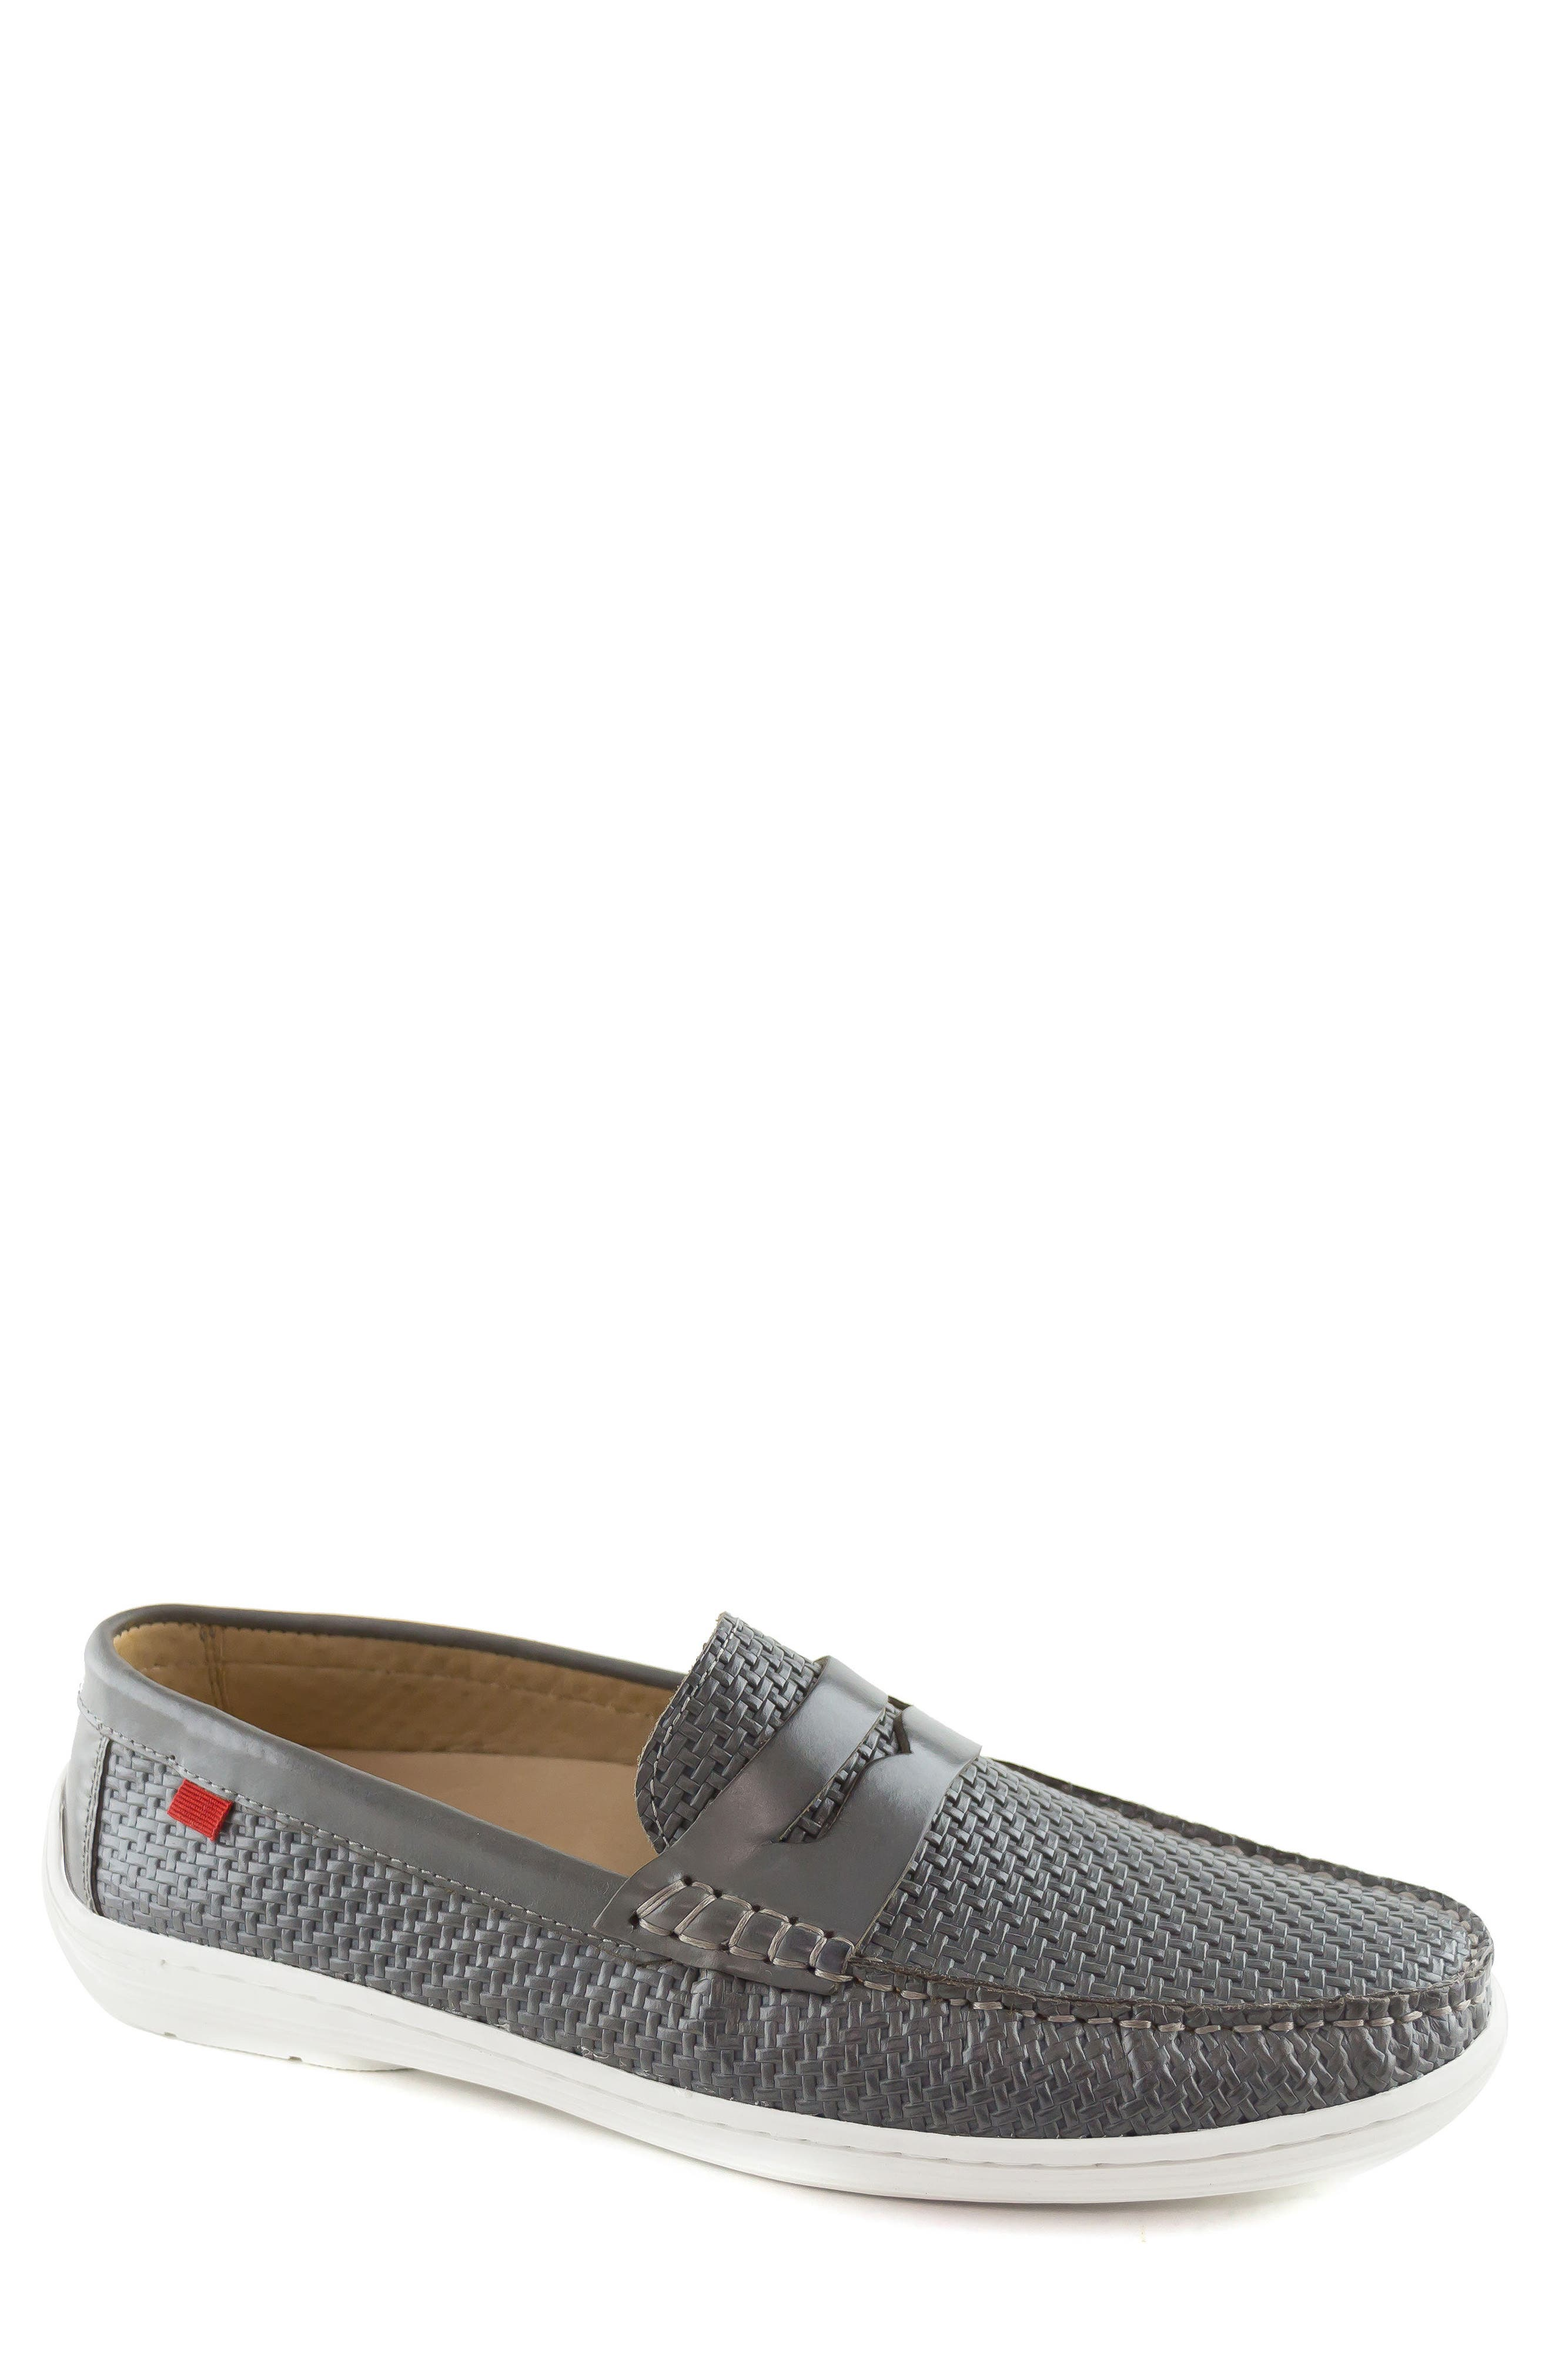 Atlantic Penny Loafer,                             Main thumbnail 1, color,                             Grey Leather